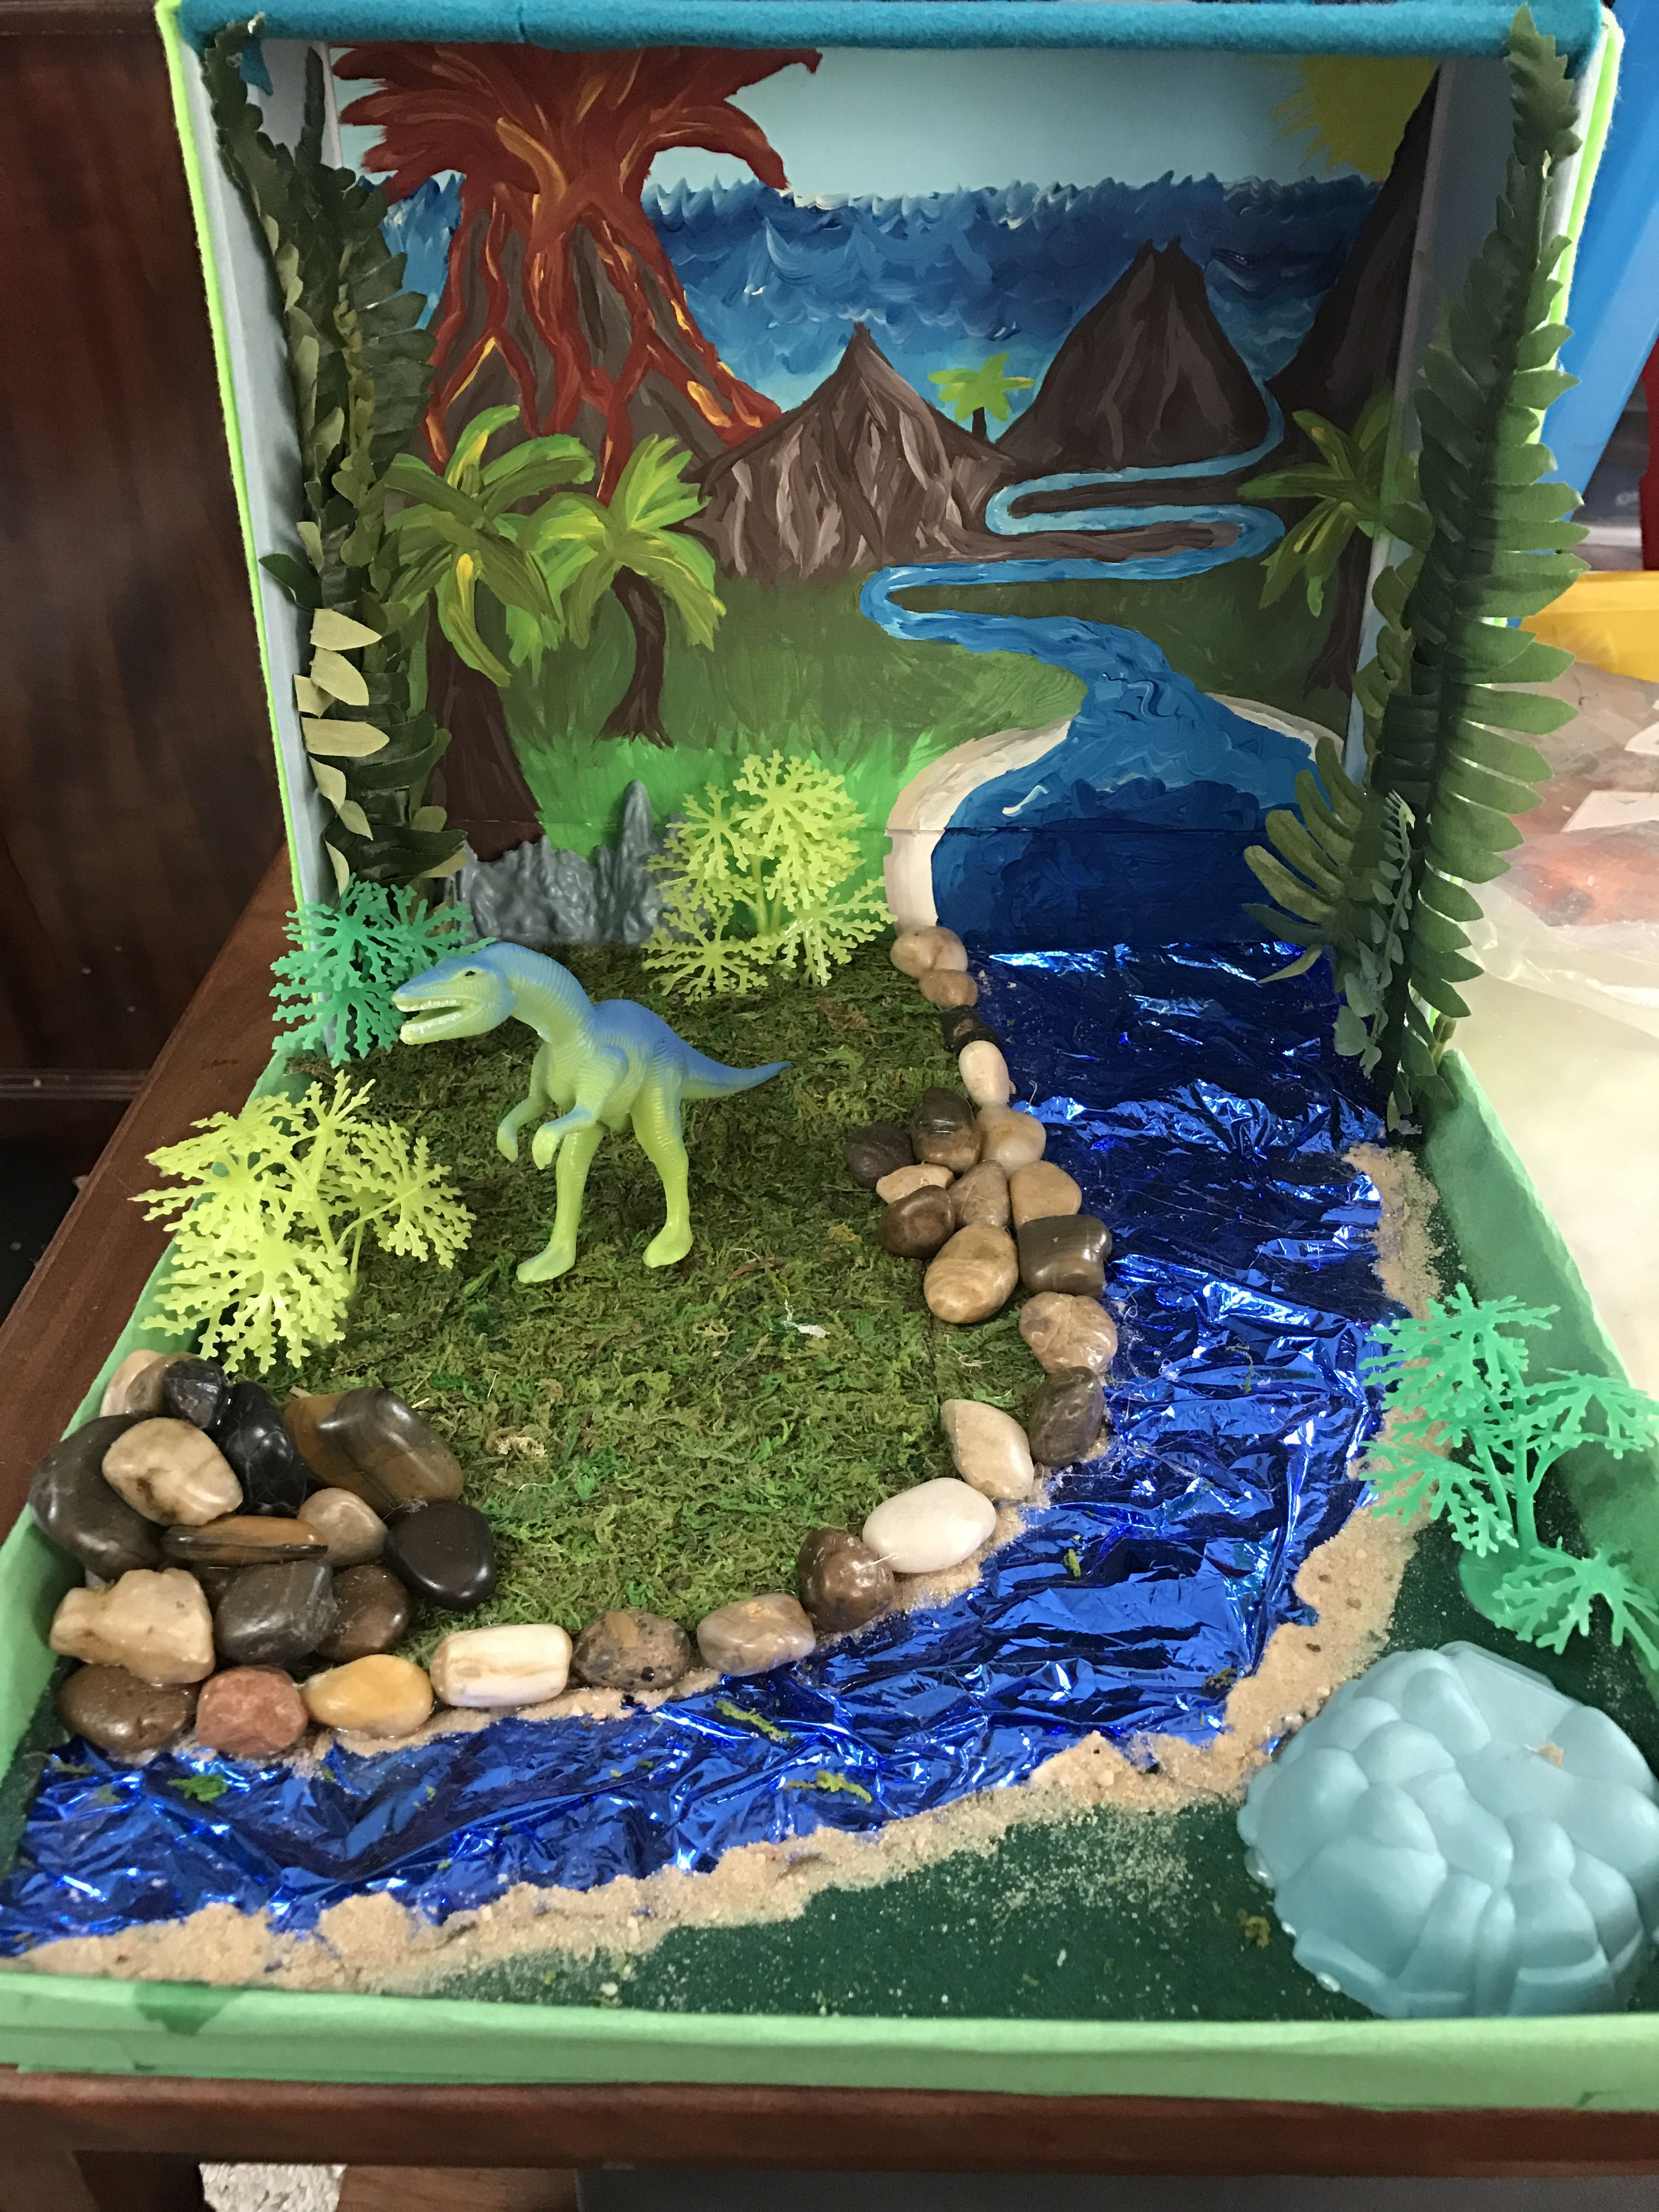 Make Your Own Diorama: Dinosaur Diorama An Old Shoe Box, A Painting For The